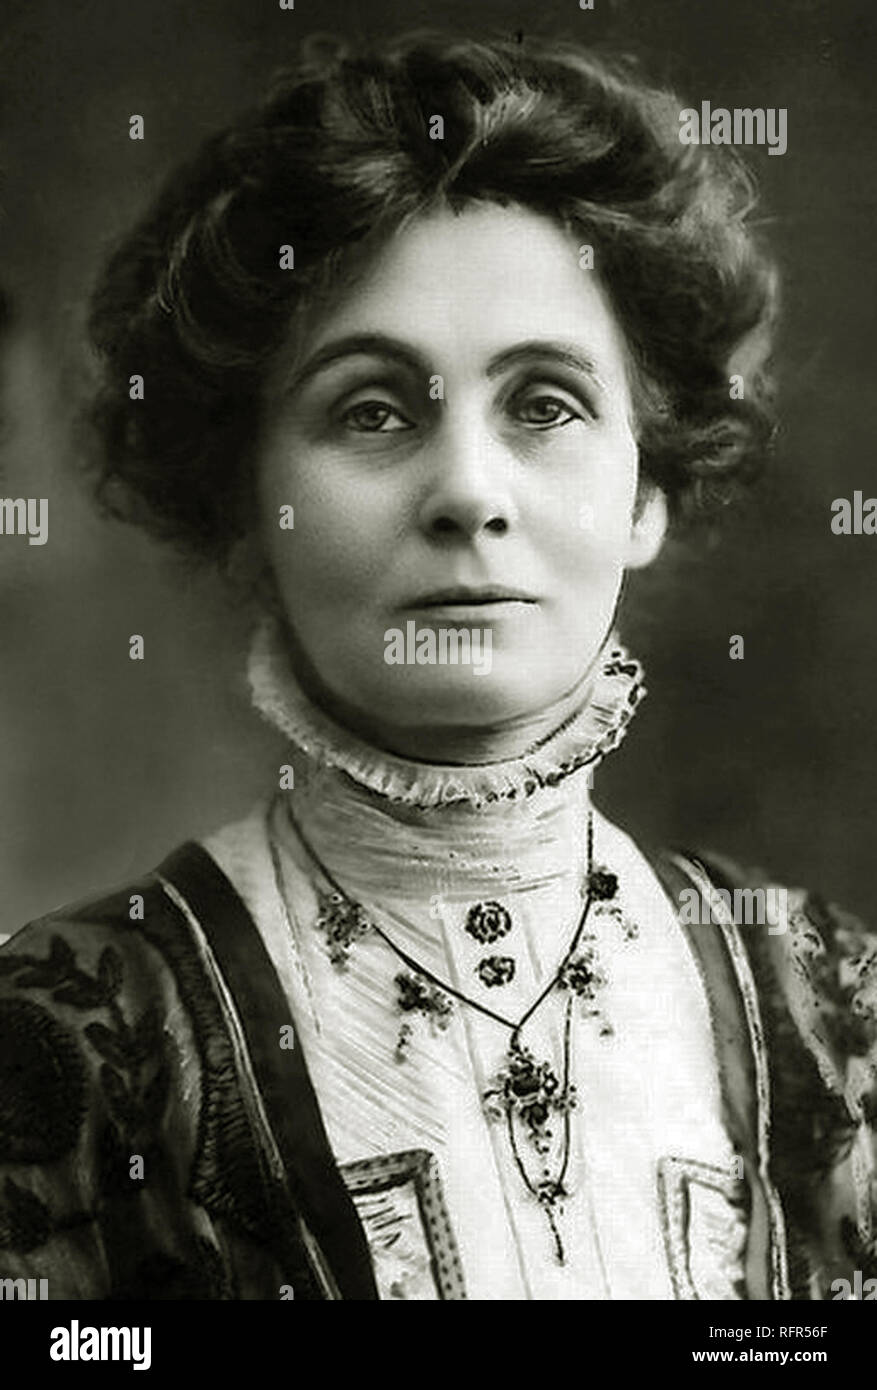 Emmeline Pankhurst was born on 14 July 1858 in Moss Side, Manchester. Her family were very wealthy and her parents were both politically active. Scanned from image material in the archives of Press Portrait Service - (formerly Press Portrait Bureau). As she grew older, Emmeline noticed that women were treated differently to men and became motivated to help change that. In 1903 she, along with her daughters Sylvia and Christabel, founded the Women's Social and Political Union (WSPU). Emmeline Pankhurst is remembered for her hard work with the WSPU in the fight to help get British women the vote - Stock Image